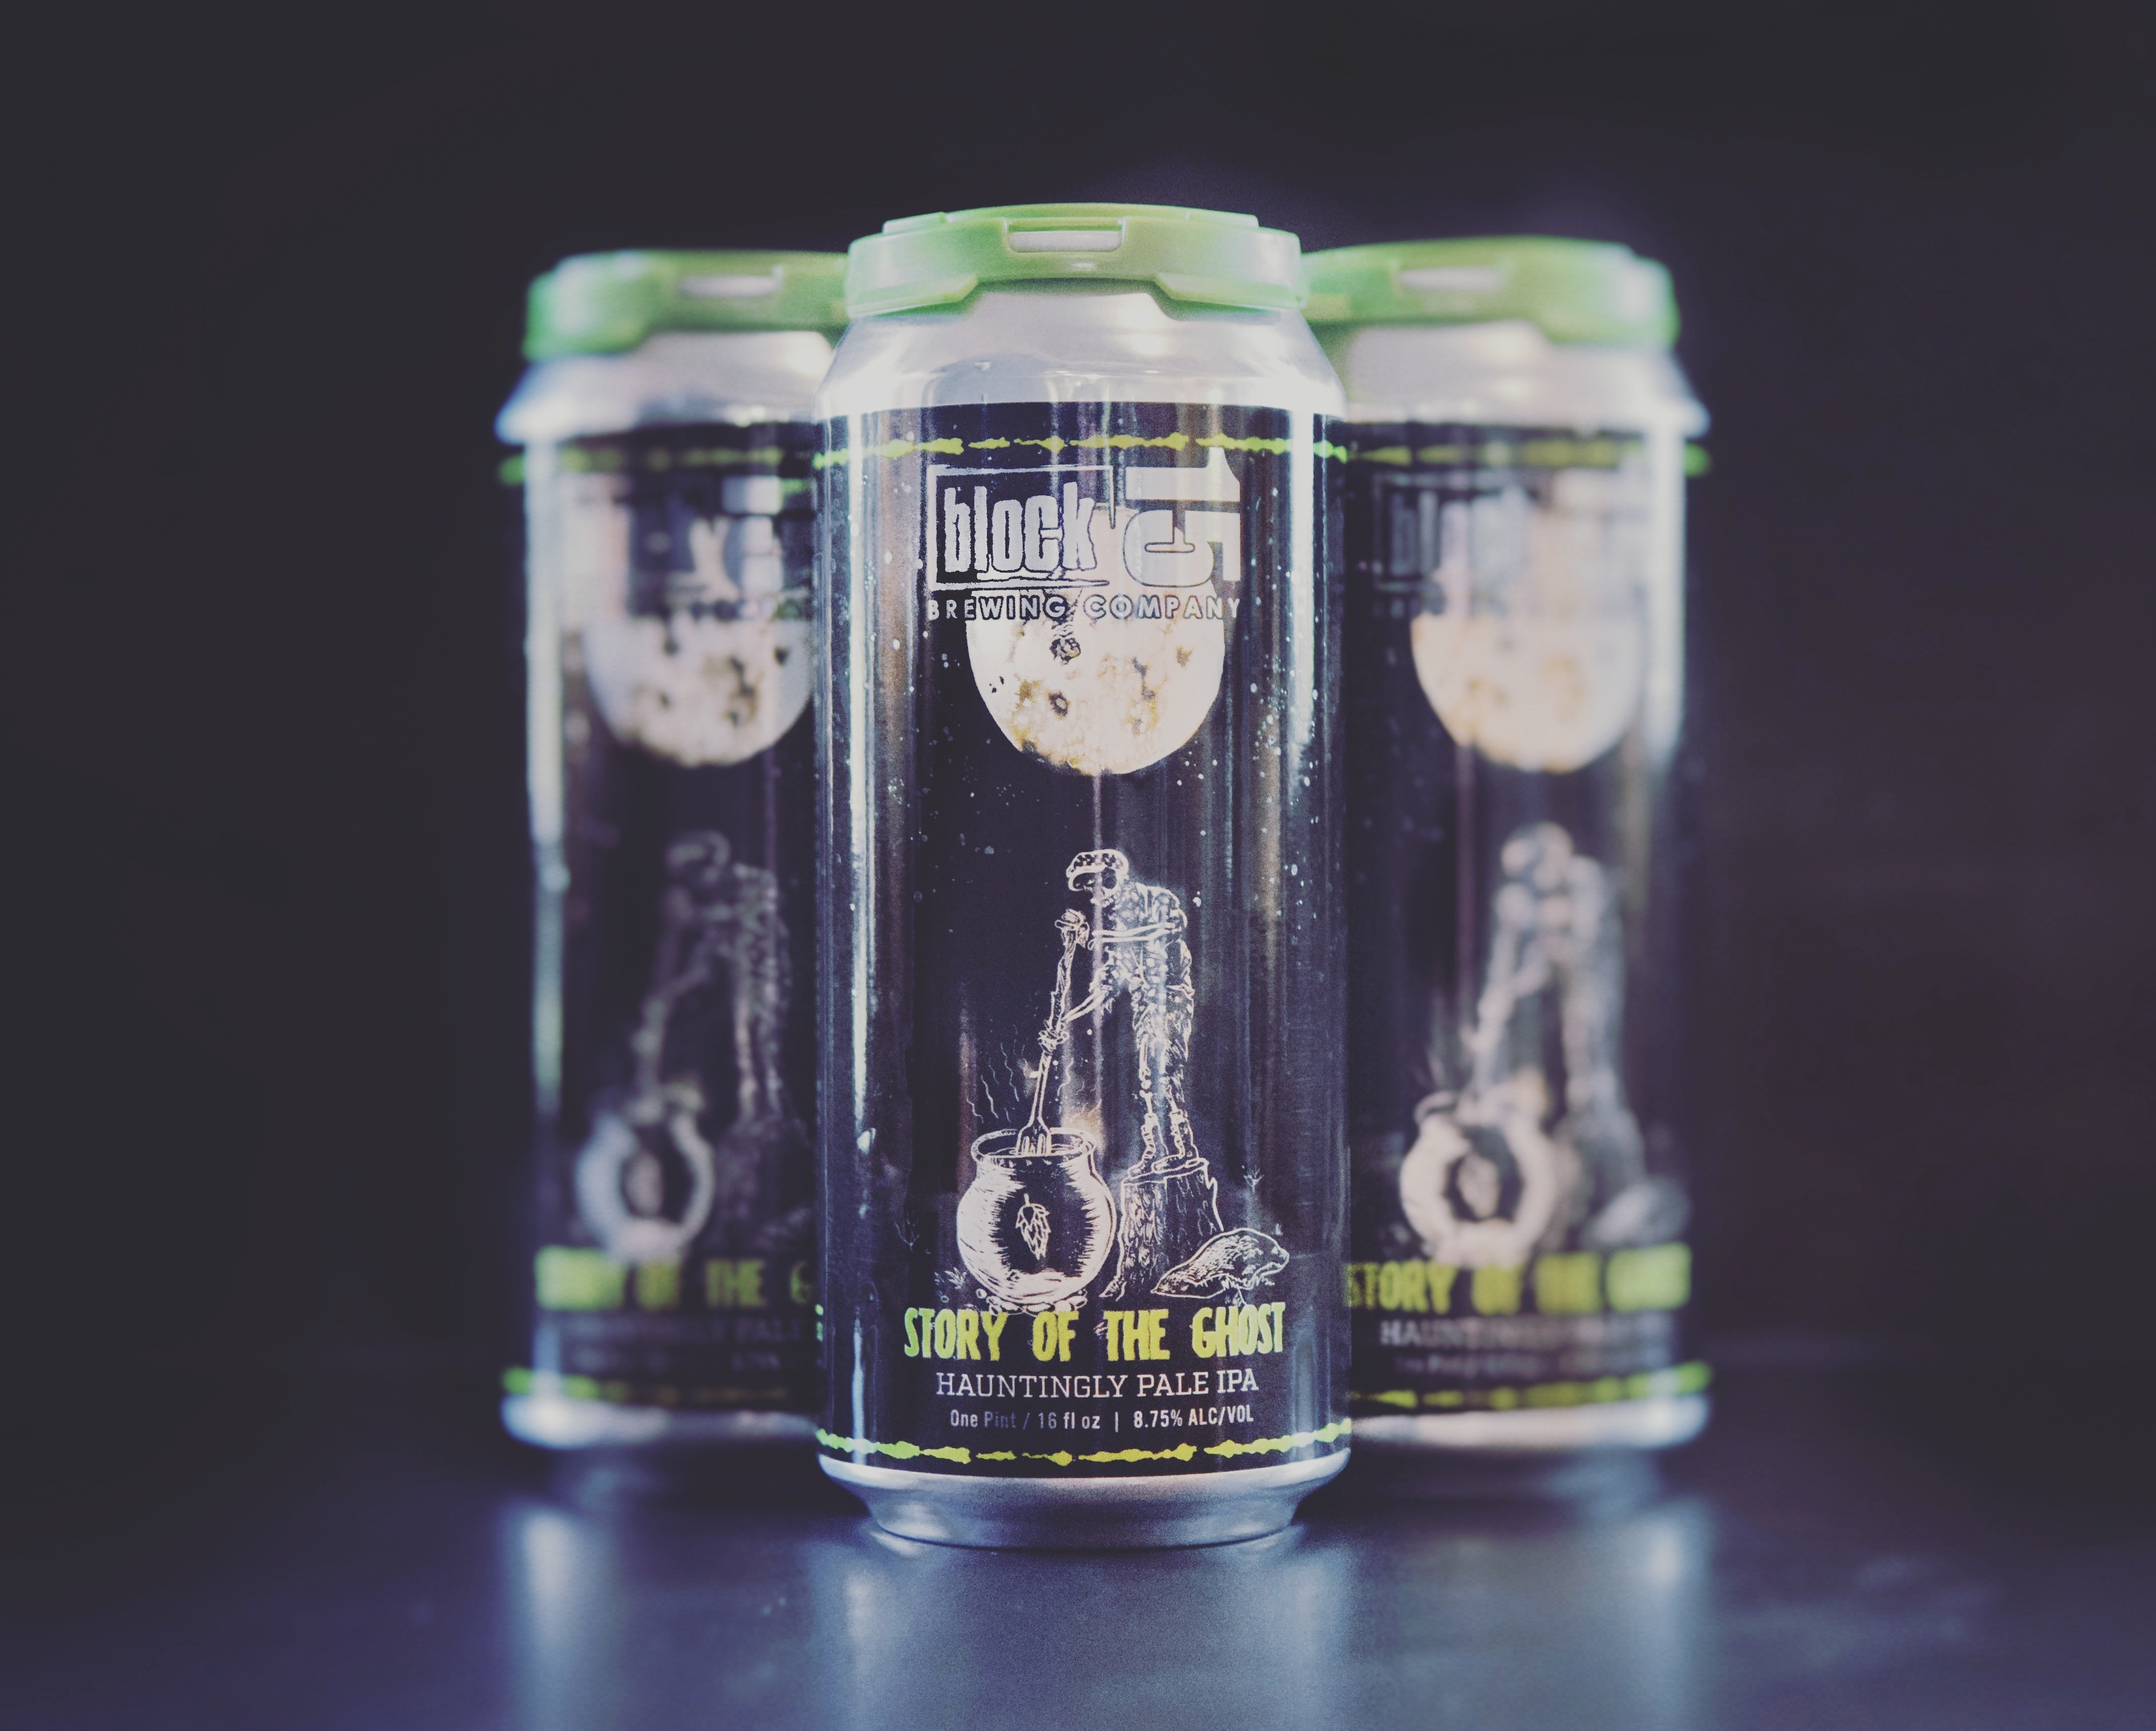 Block 15 Story of the Ghost 16 oz. cans. (image courtesy of Block 15 Brewing)